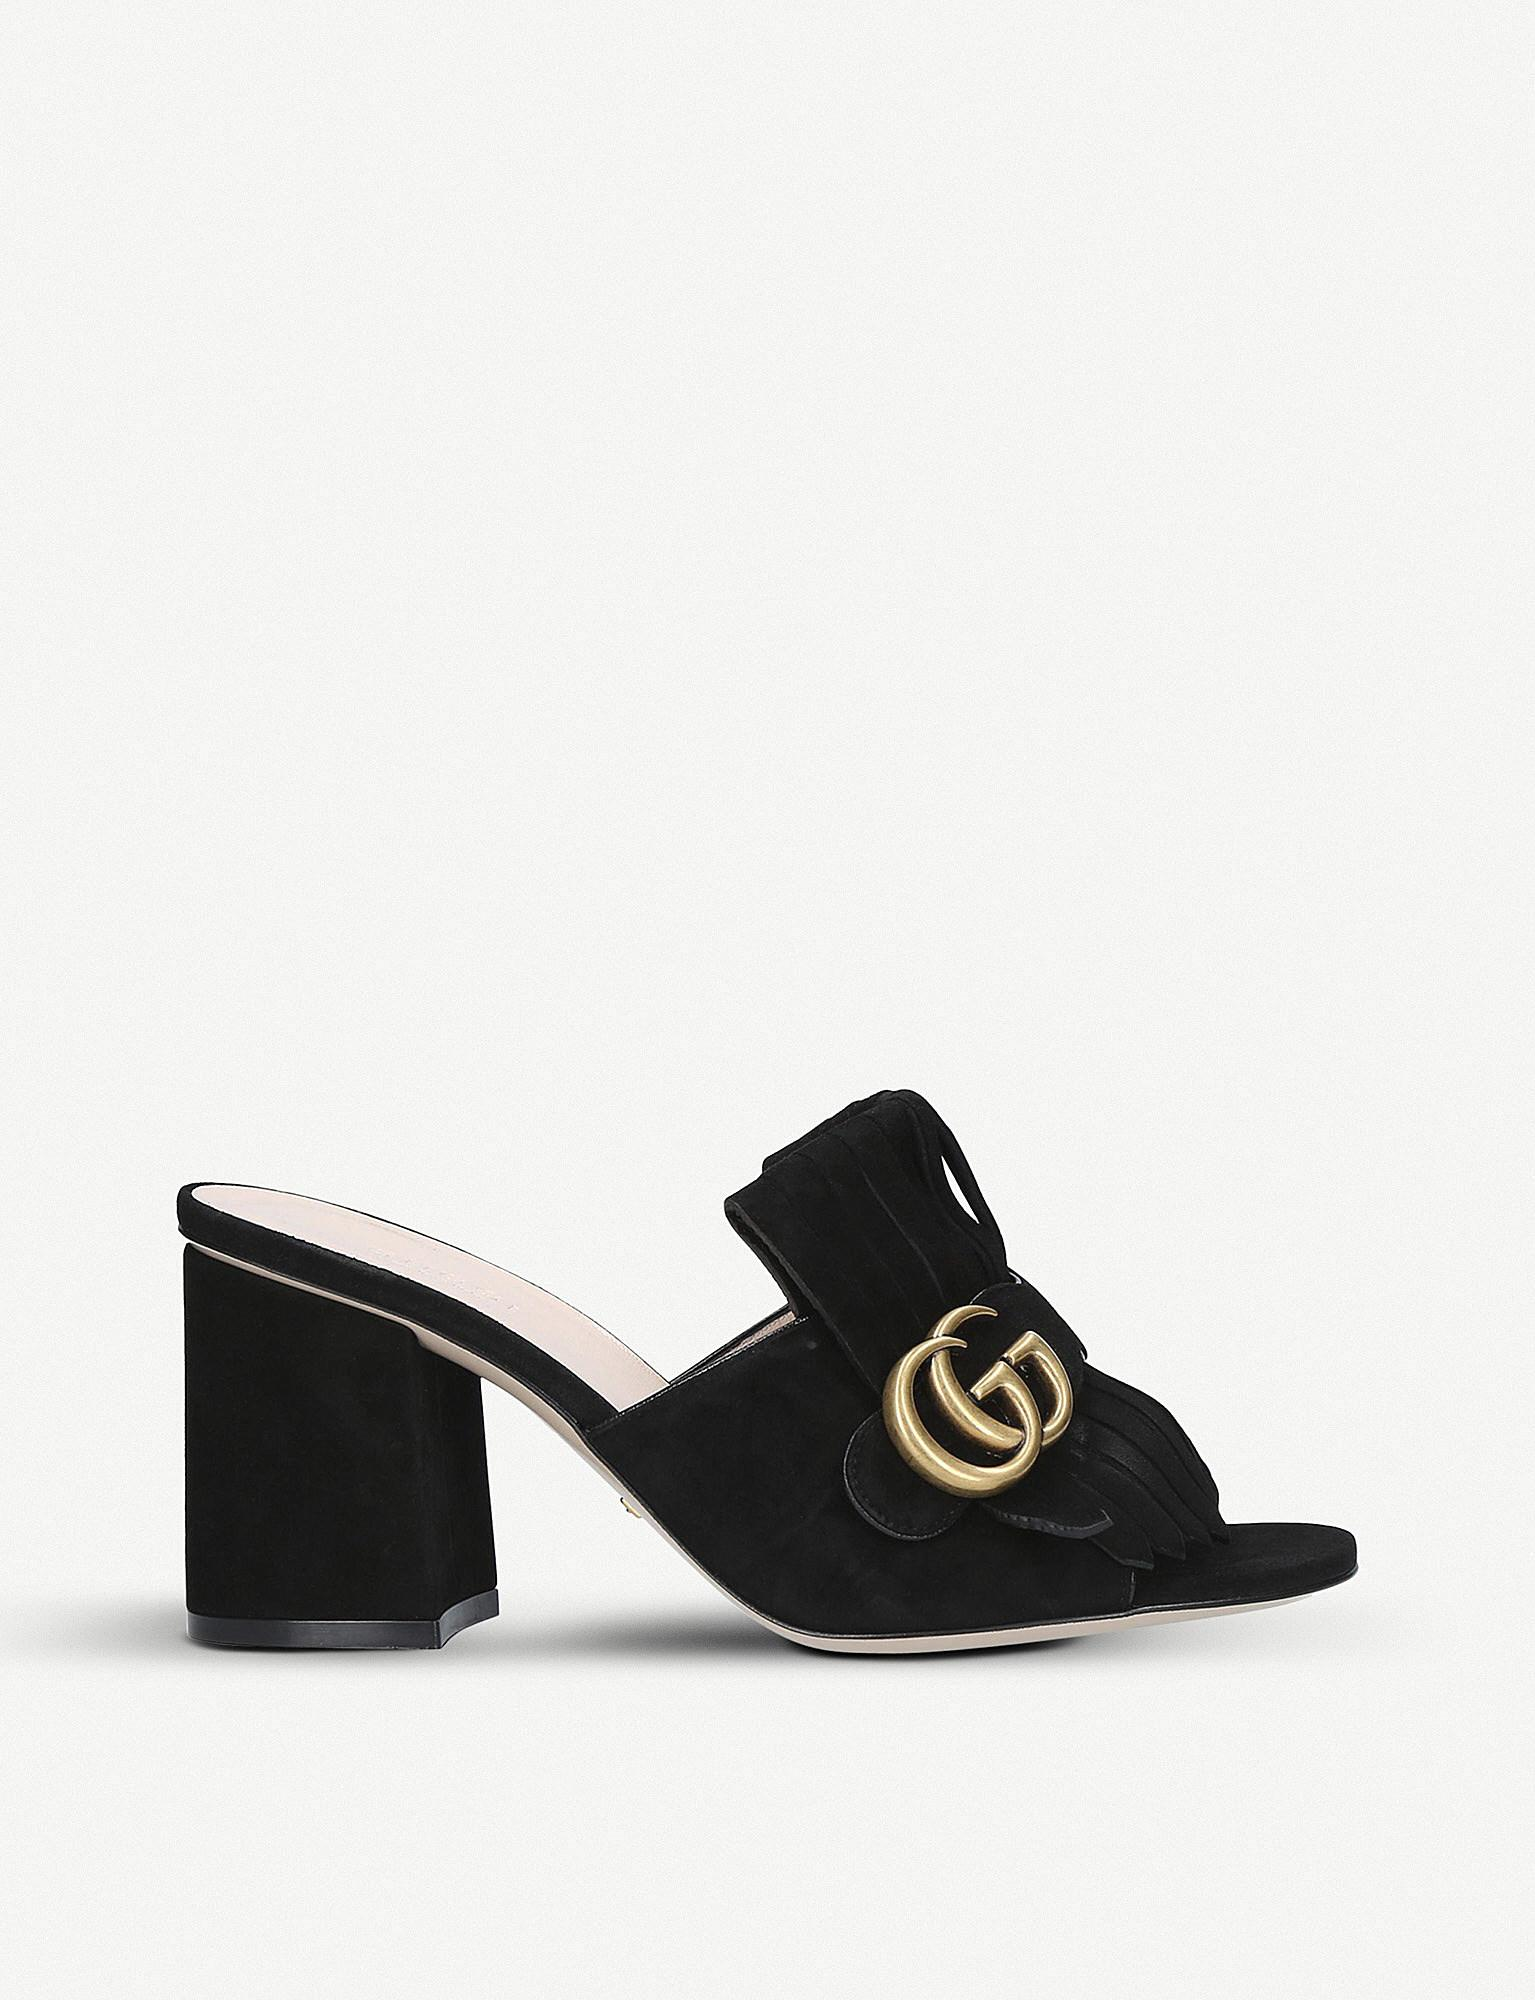 5g5h4lPe2z GG Mid-heel Fringed Marmont Mules zDk7Ns